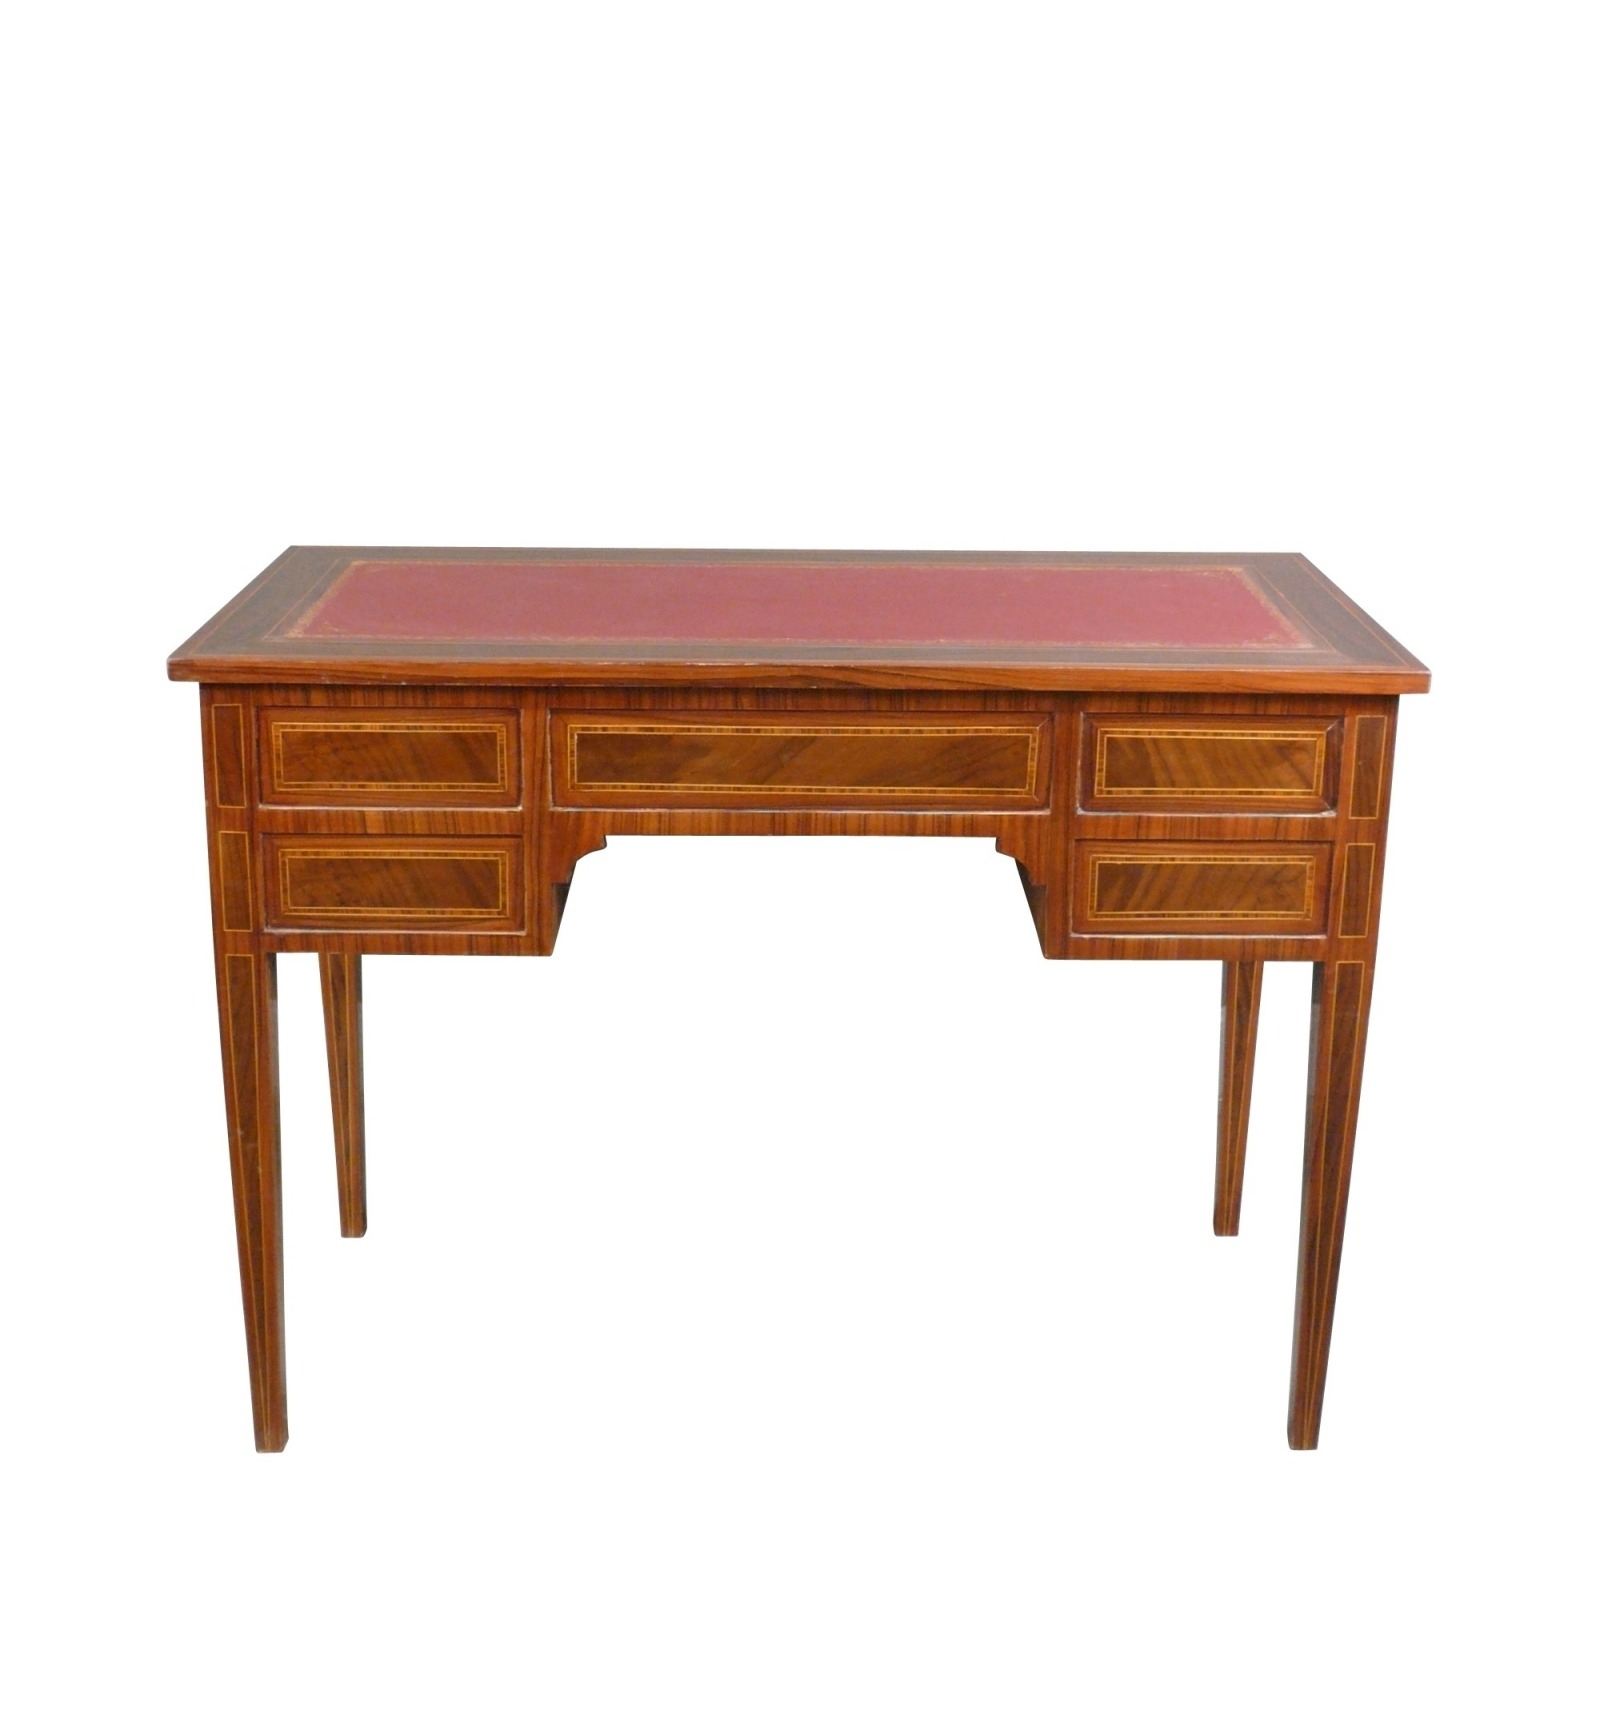 Louis xvi desk in cherry for Bureau louis xvi